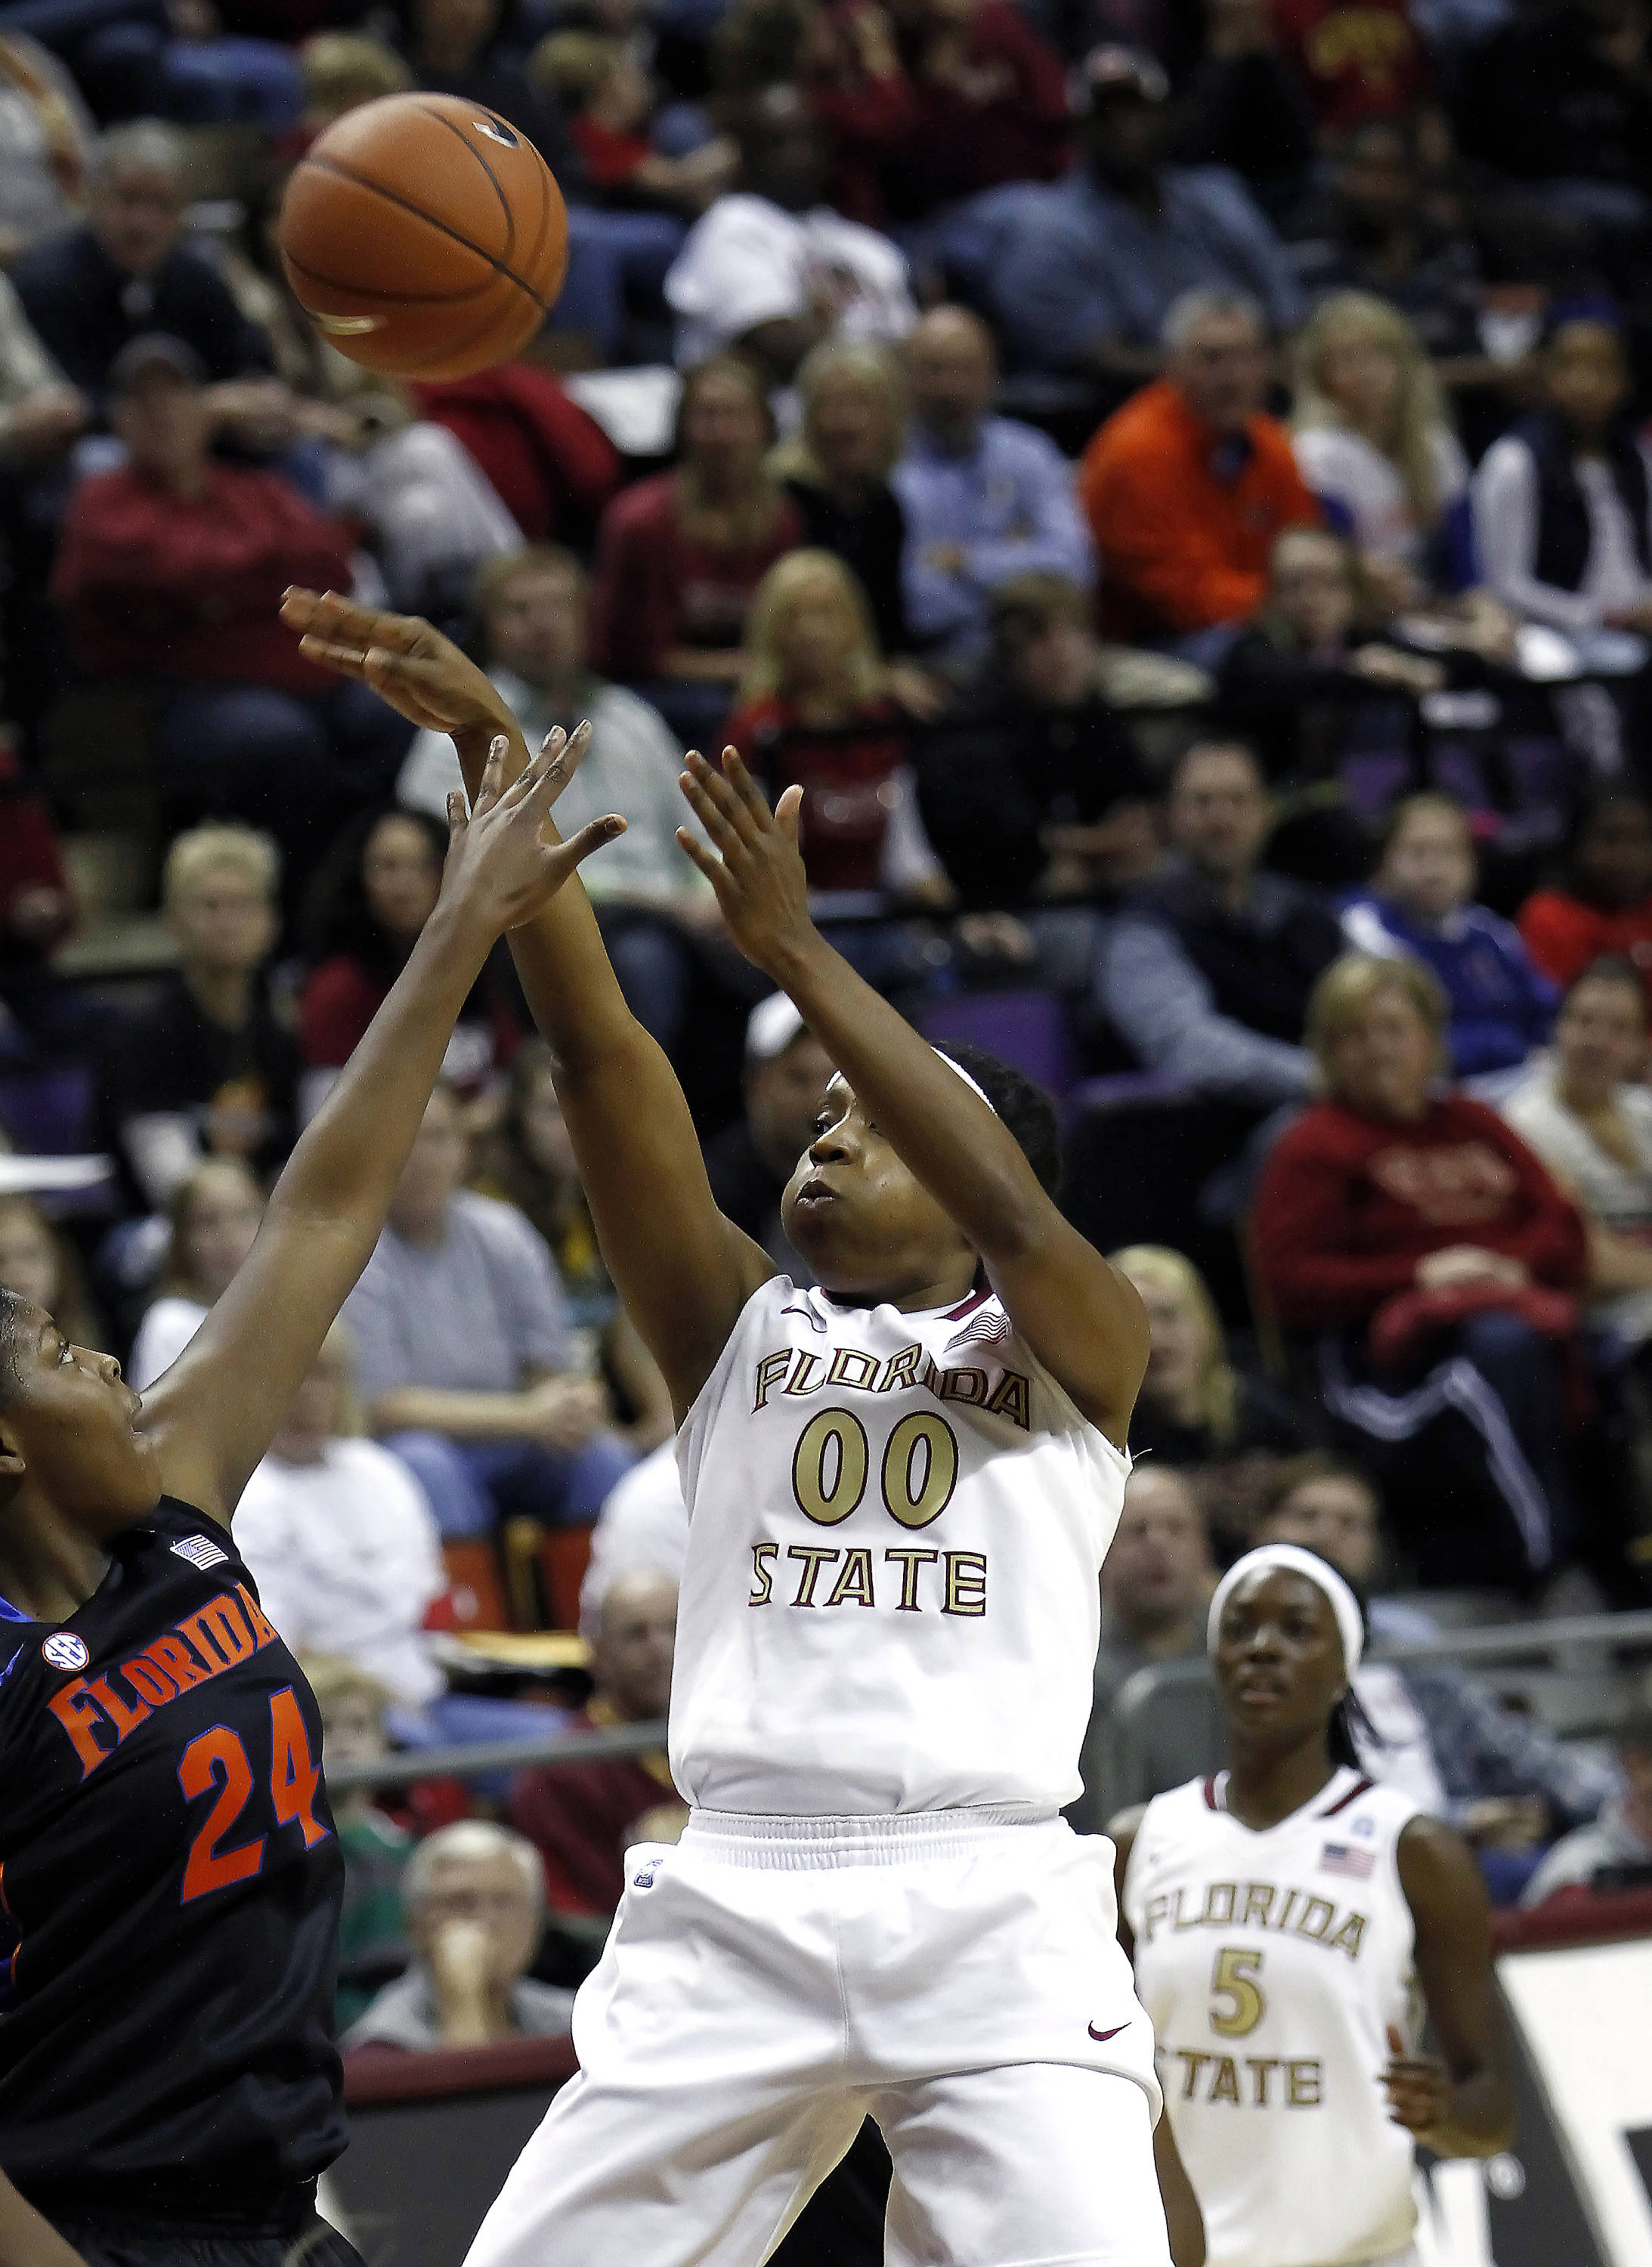 FSU vs Florida  12/28/10 - Chasity Clayton (00), Christian Hunnicutt (5)#$%^Photo by Steve Musco